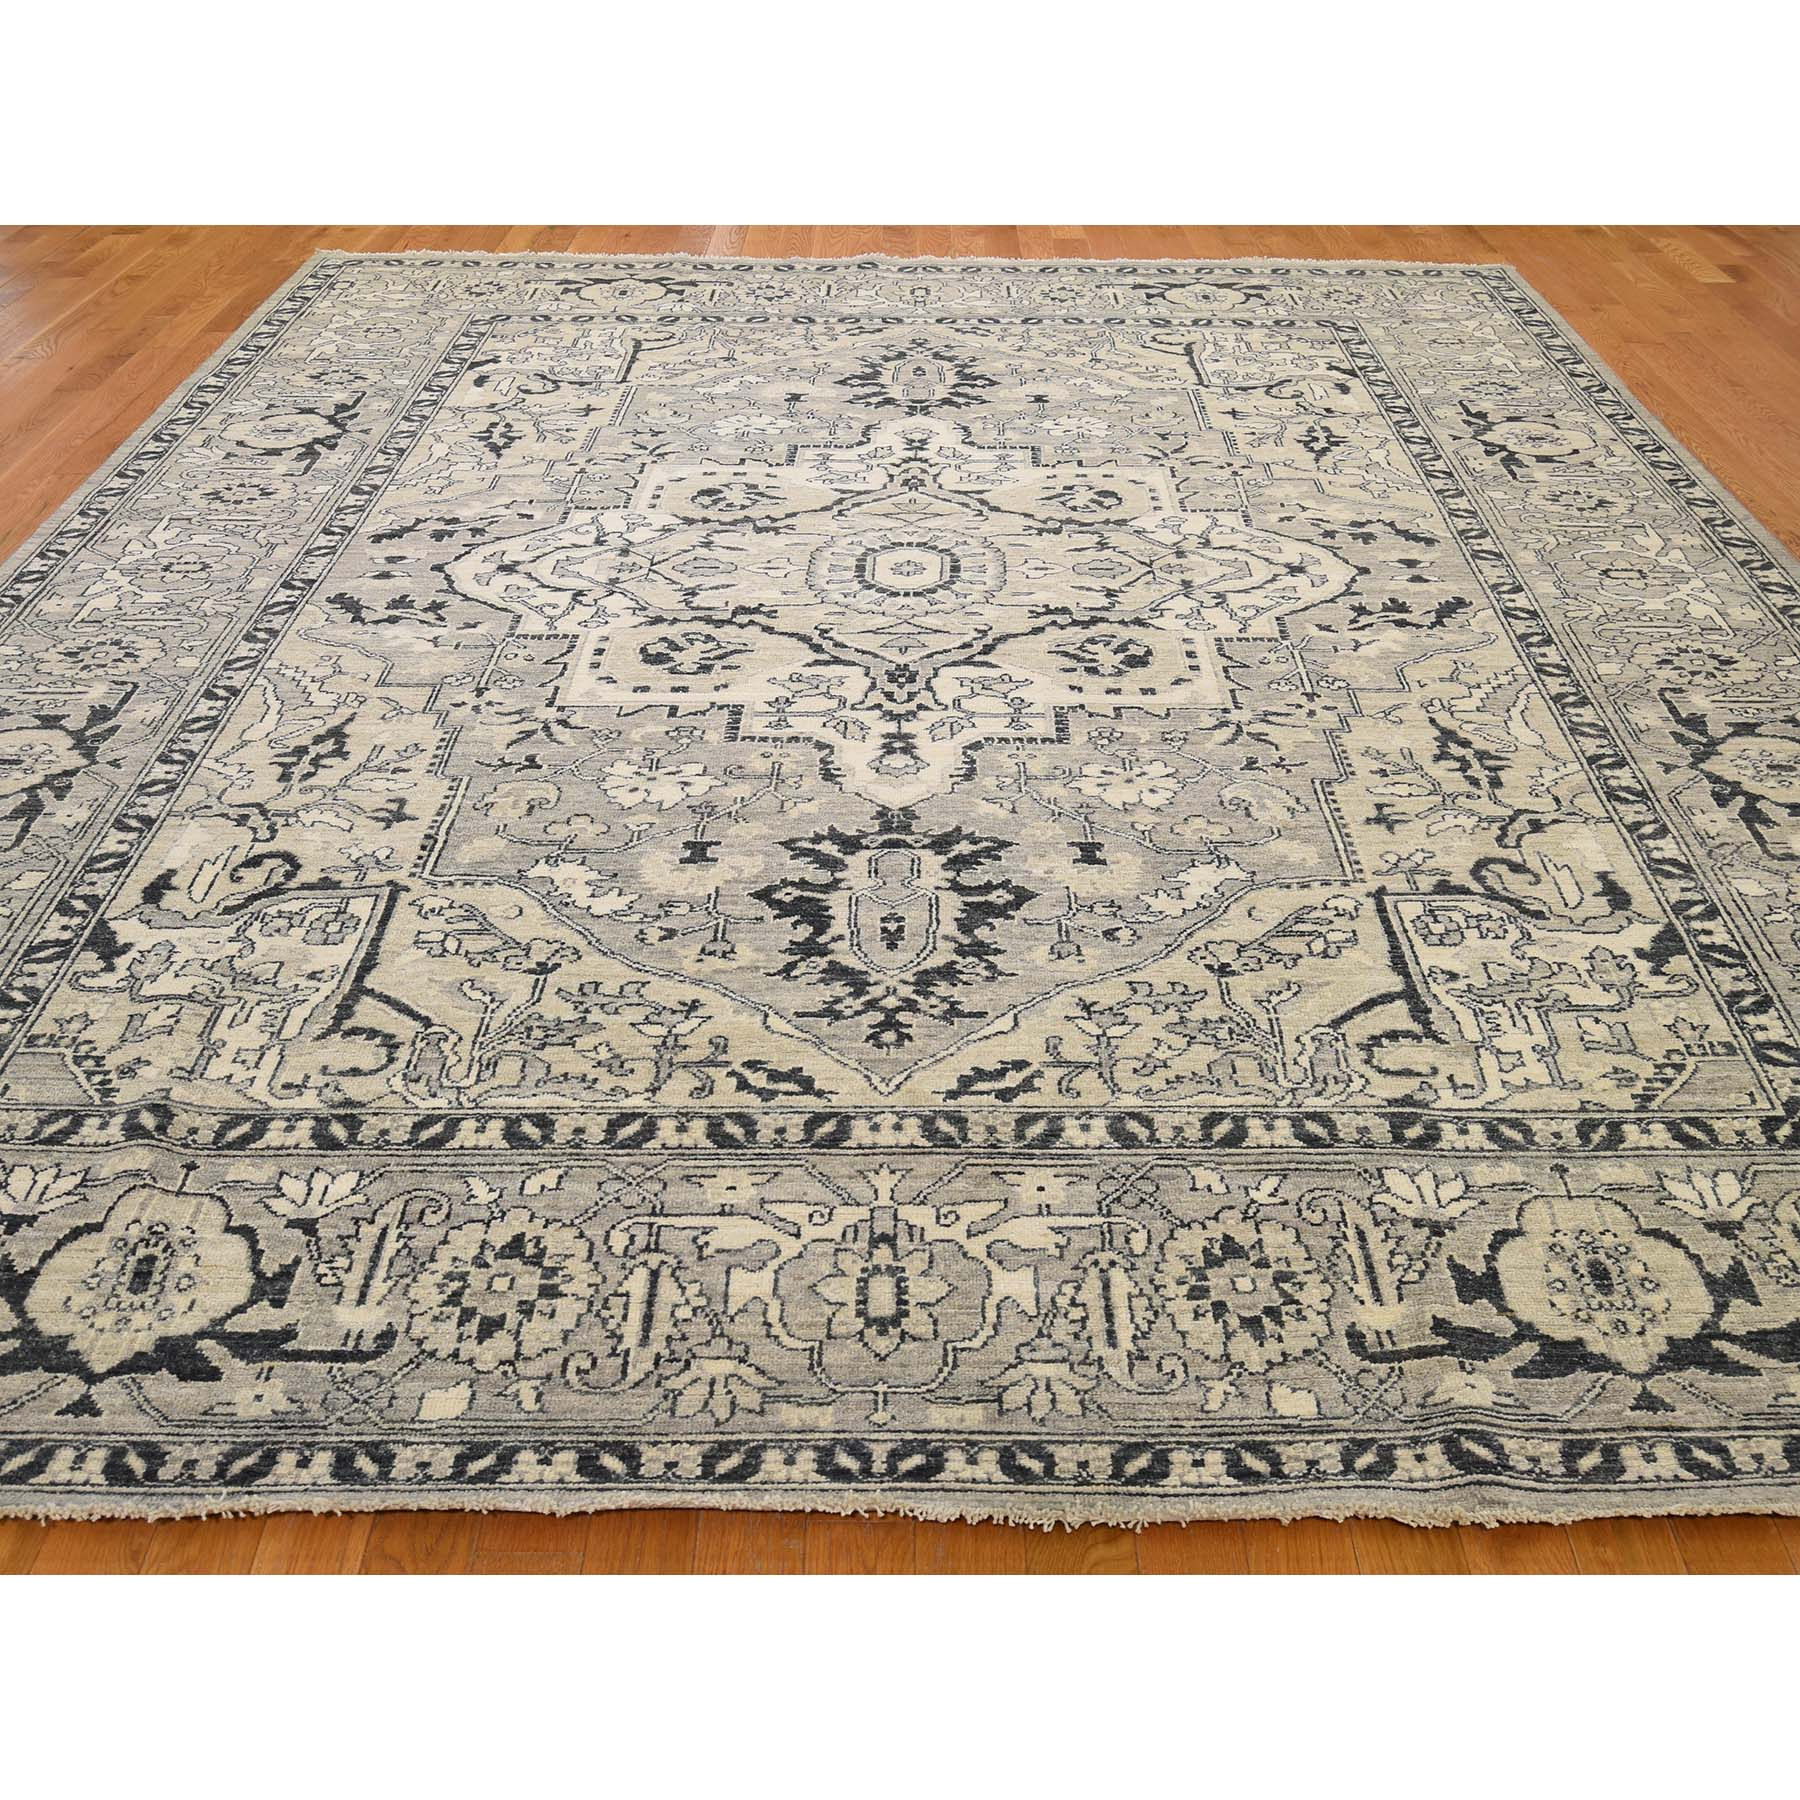 9-3 x12- Hand-Knotted Peshawar With Heriz Design Oriental Rug